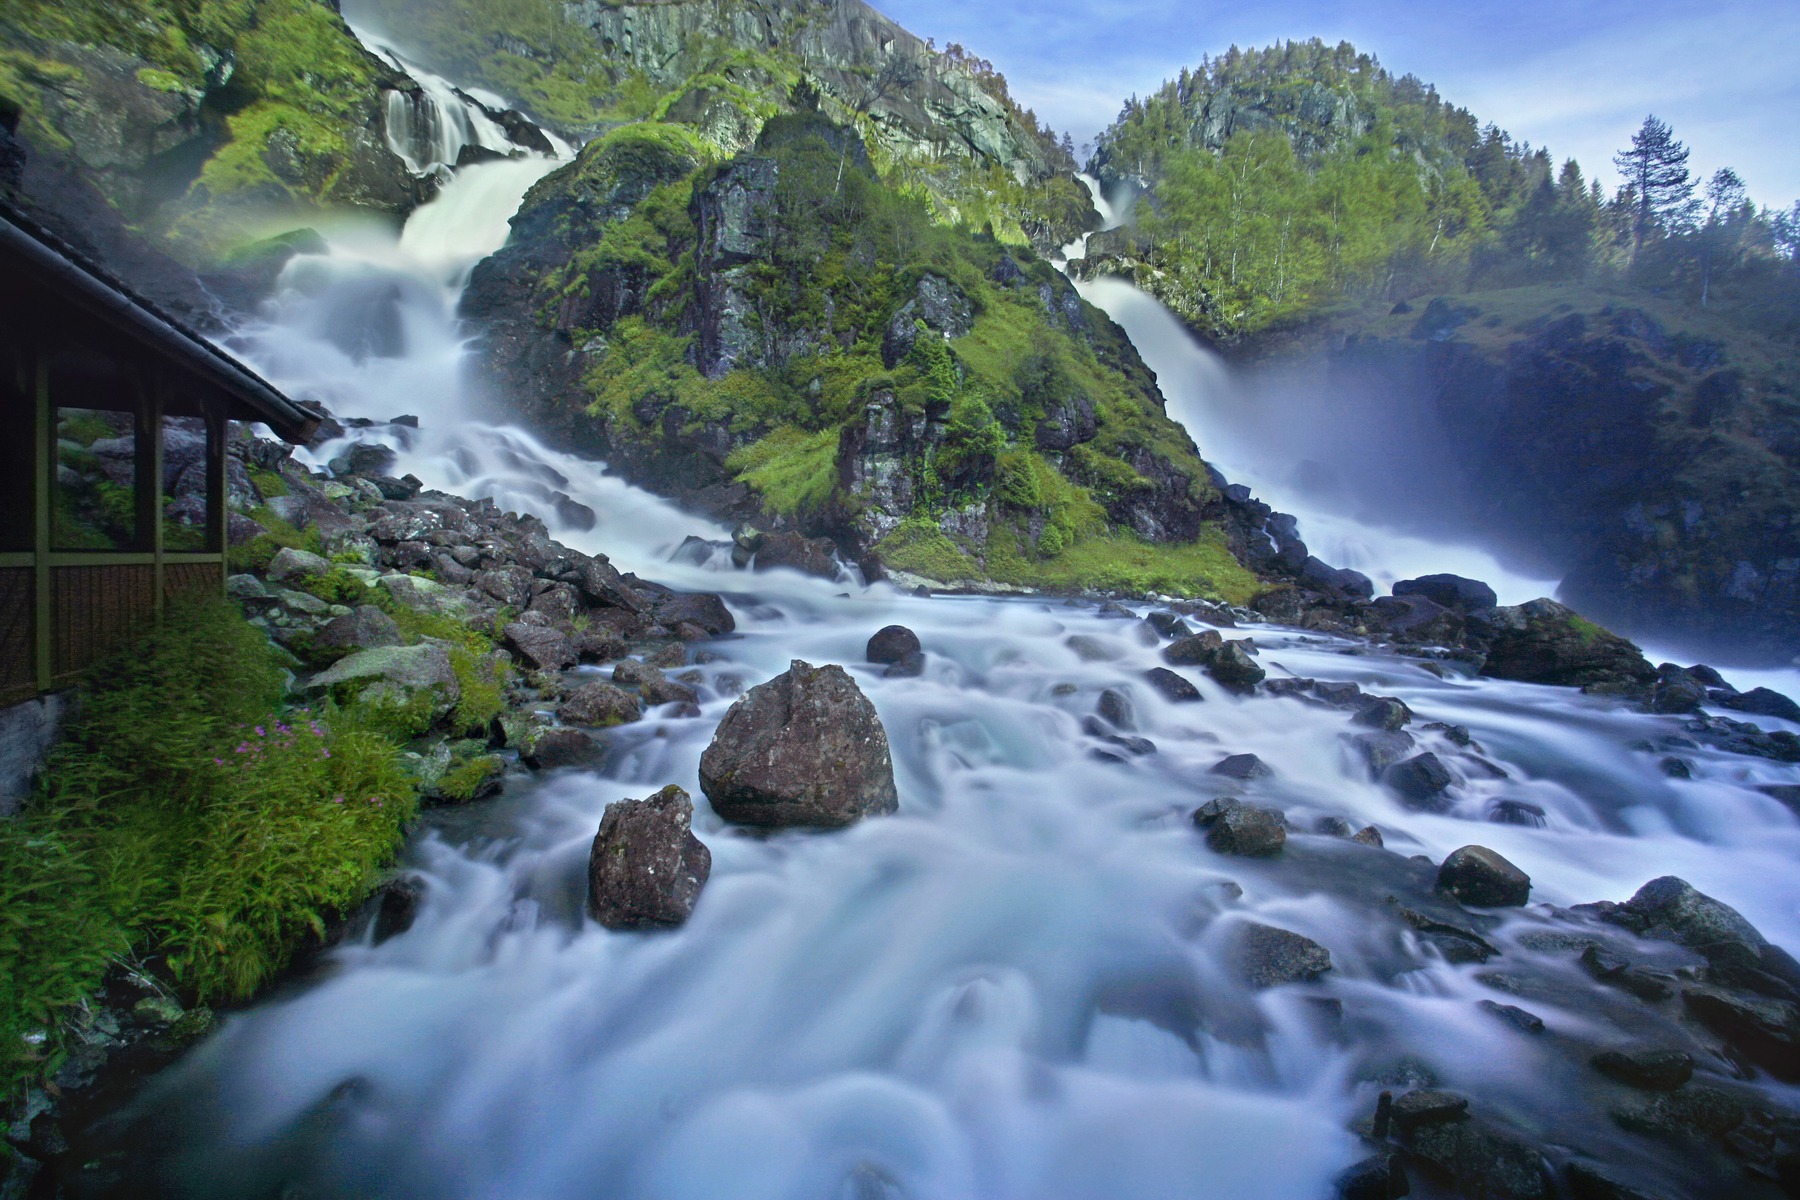 Låtefossen, a famous twin-waterfall in Oddadalen, Hordaland County, Norway. Dropping 541 feet are two separate streams flowing down from the lake Lotevatnet making for a spectacular (and wet) view as one drives over the old, stone, six-arched bridge.